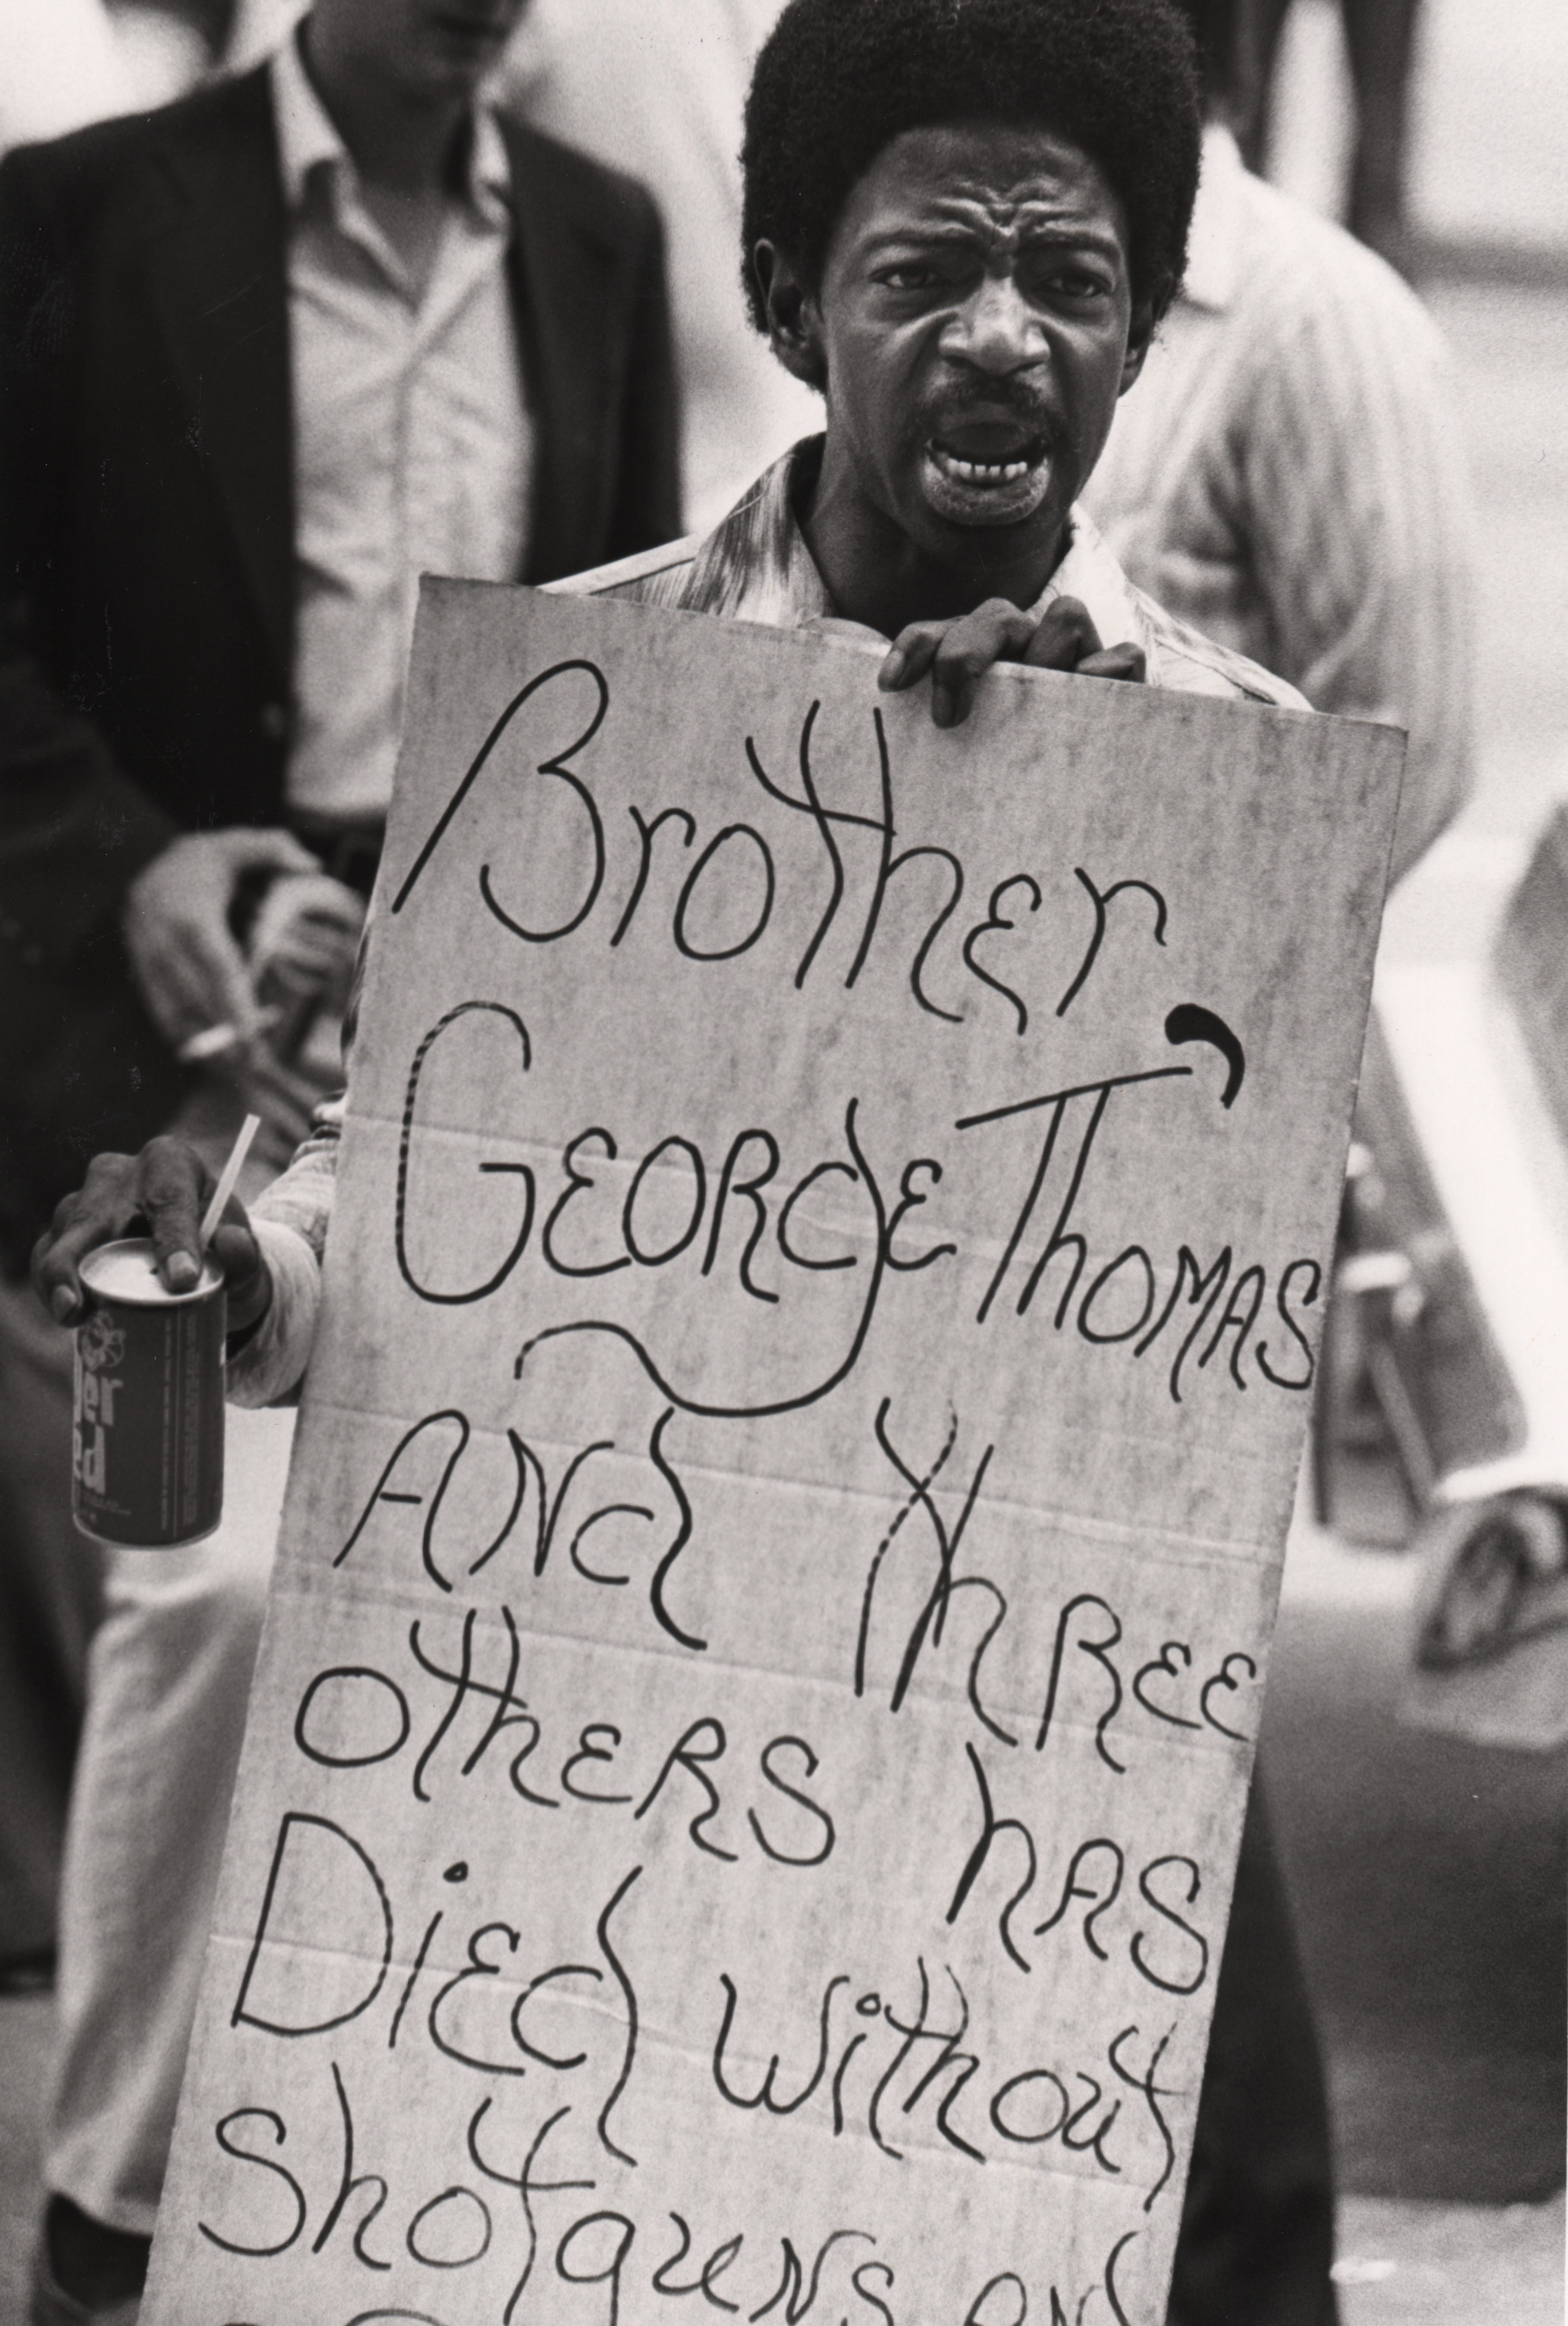 """A man holds a sign: """"Brother George Thomas and three others has died without shotguns..."""" as police marched on City Hall to demand greater protections on May 9, 1979 after taking a one-day strike."""